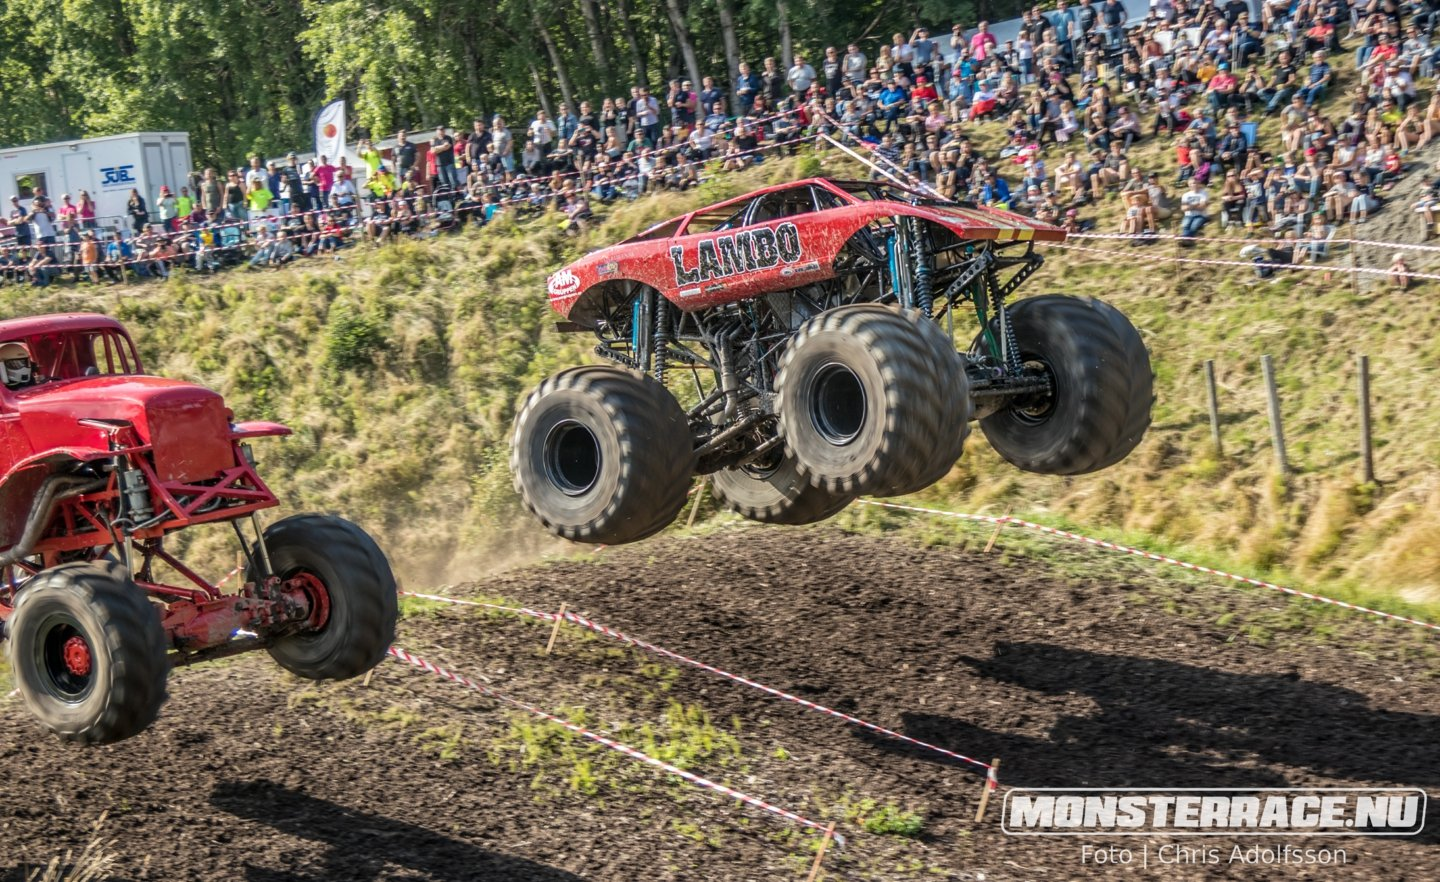 Monsterrace Ed dag 1 (205)